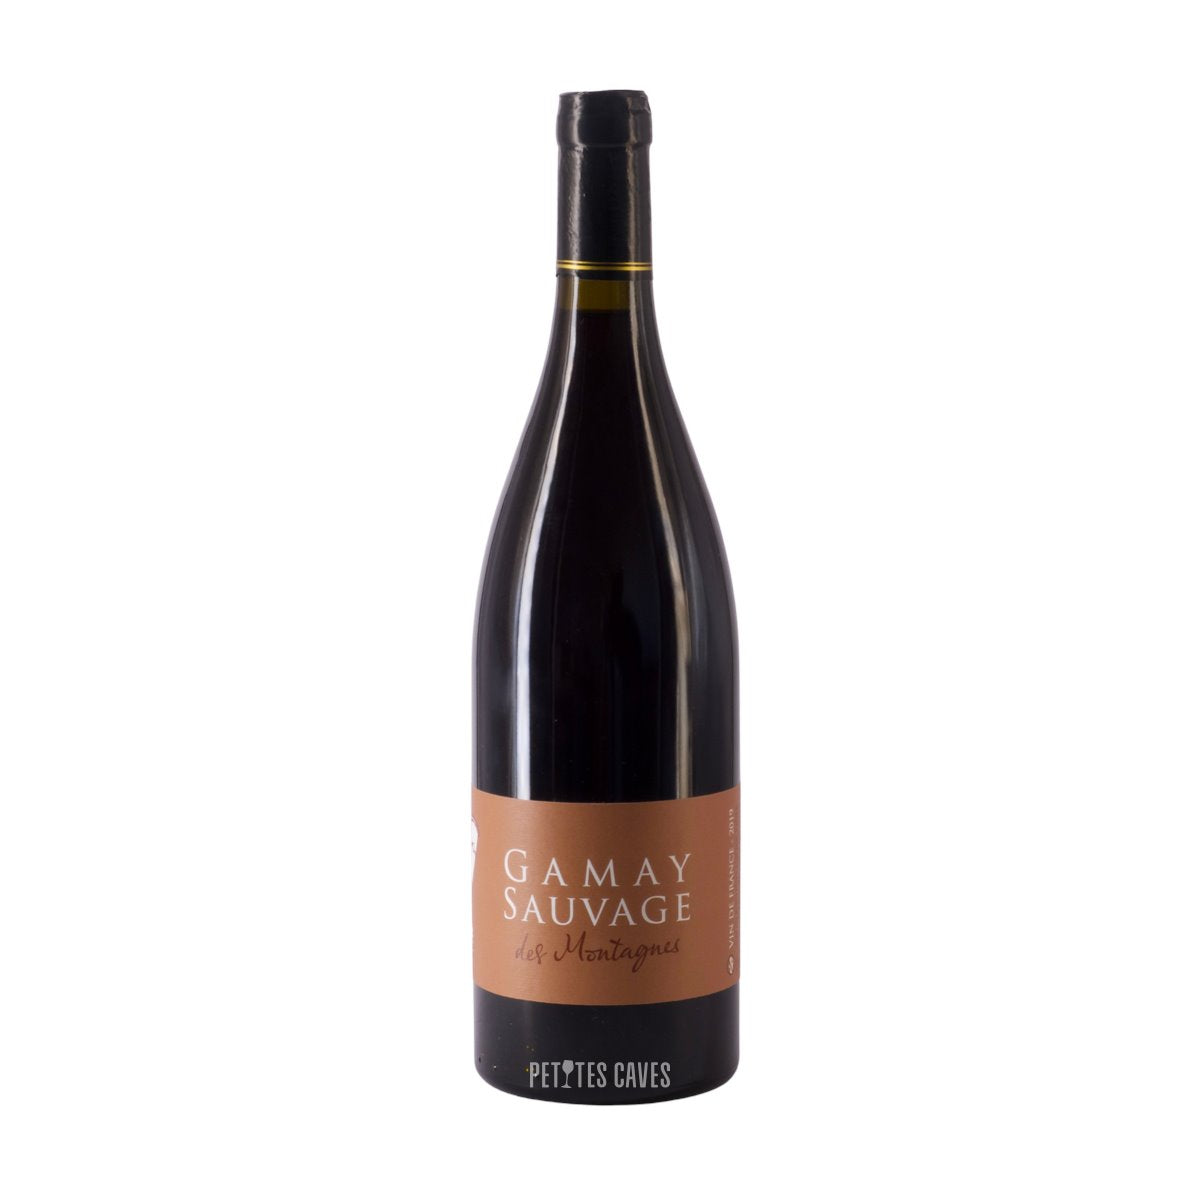 Gamay Sauvage des Montagnes